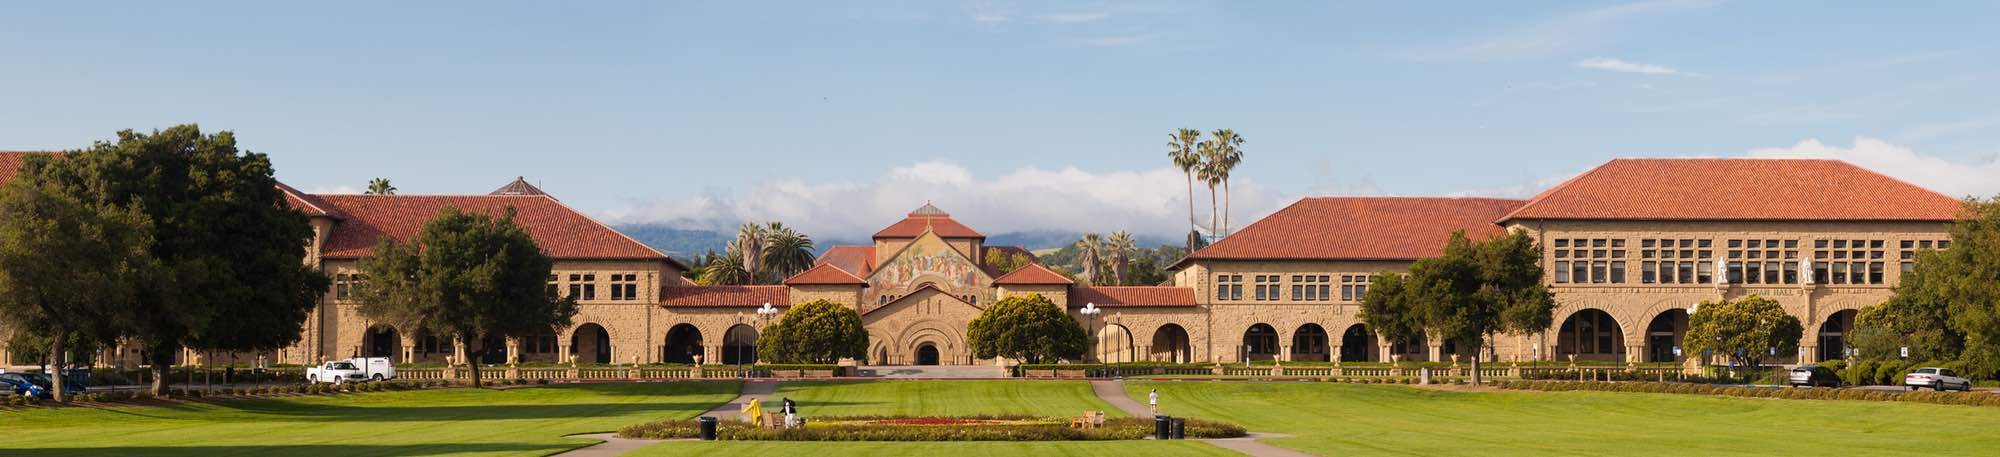 News release: Mental health of students of color is focus of expert gathering at Stanford University